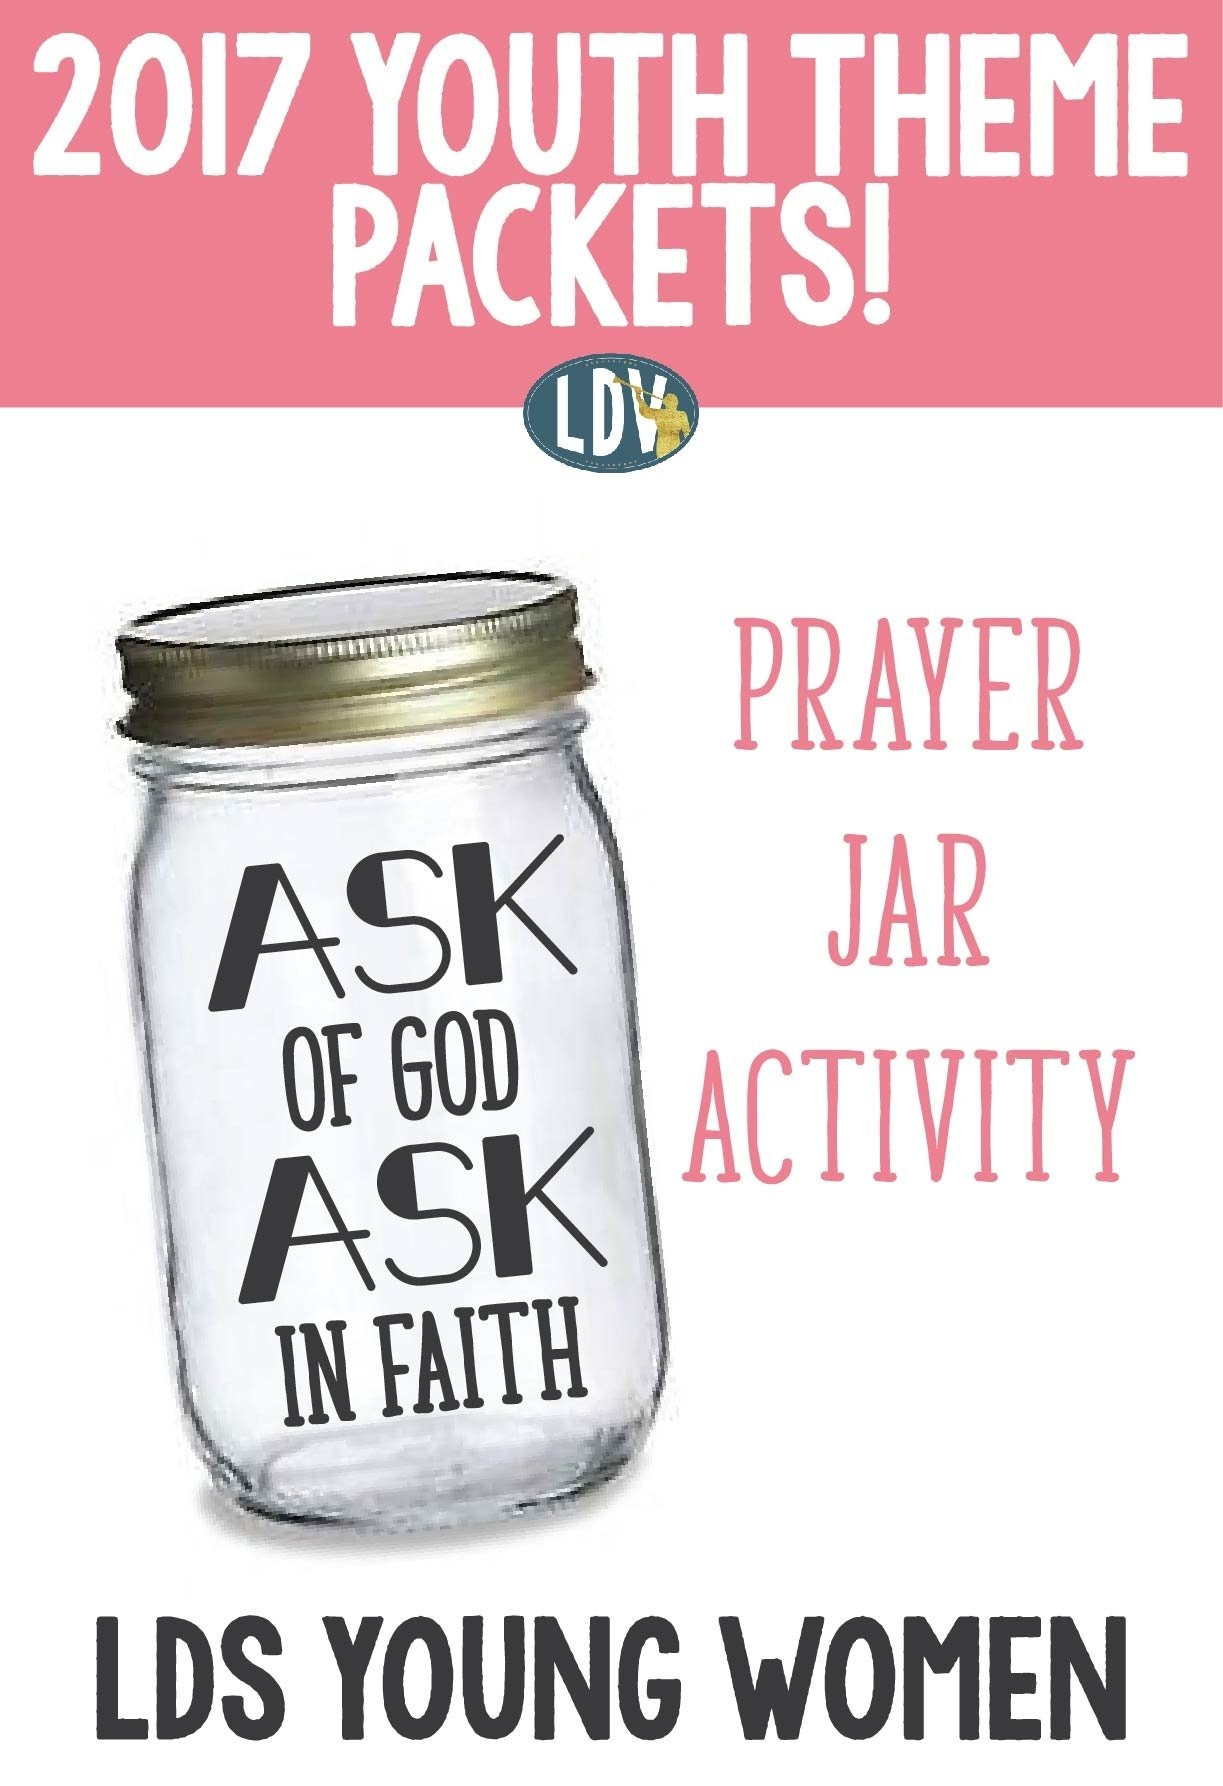 10 Awesome Lds Young Women Activity Ideas 2017 lds young women mutual theme activity ideas yw ideas 2020